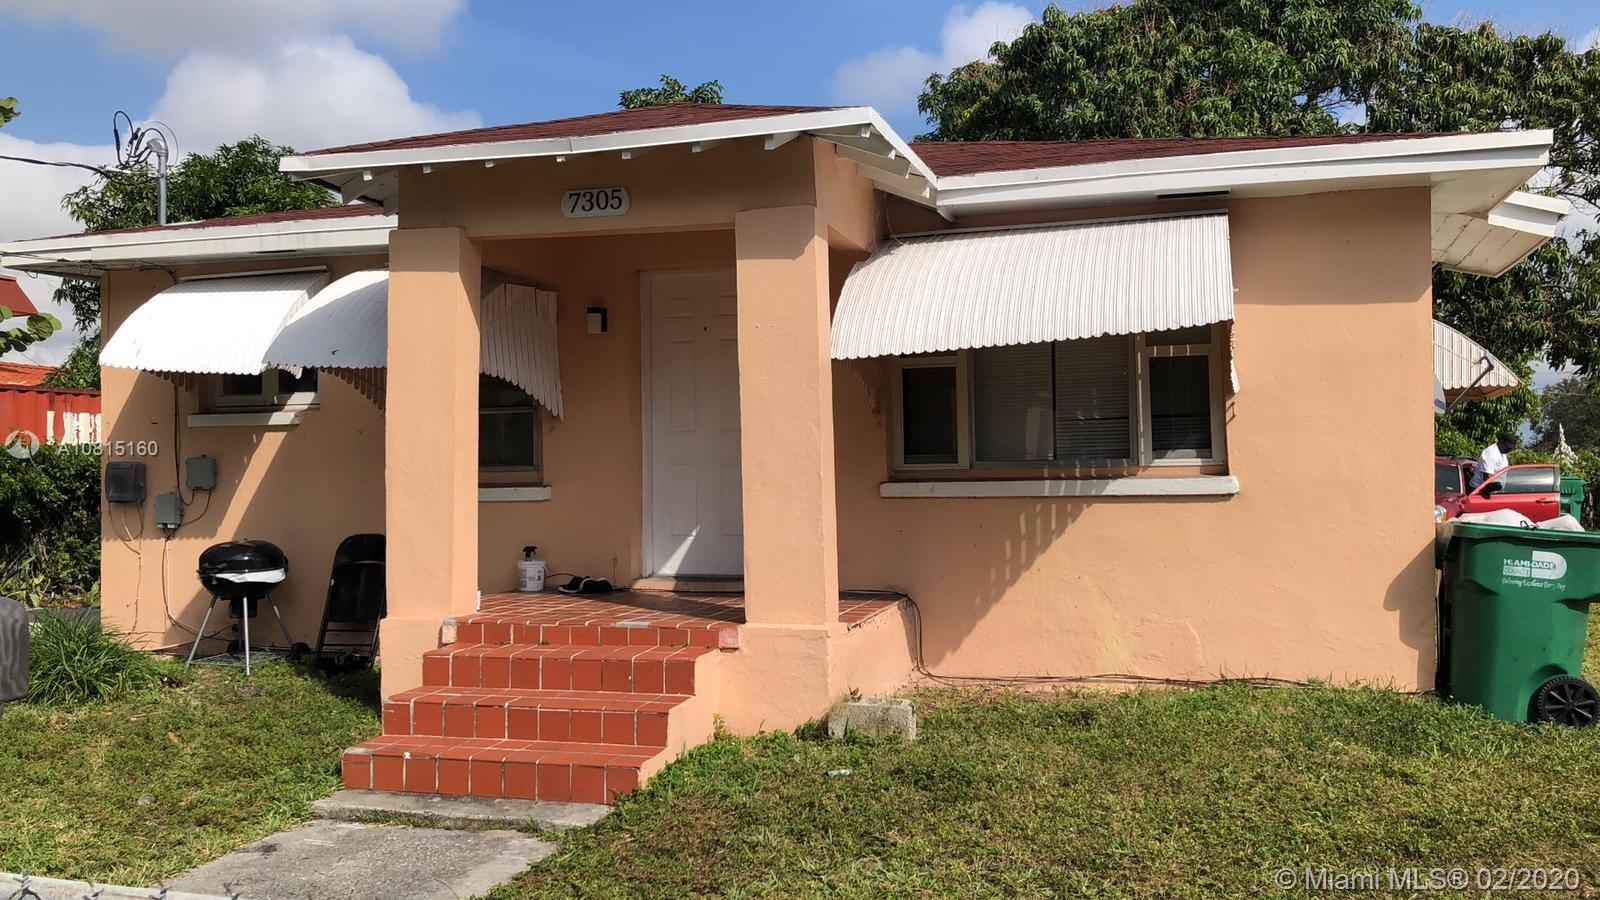 7305 NW 17th Ct  For Sale A10815160, FL